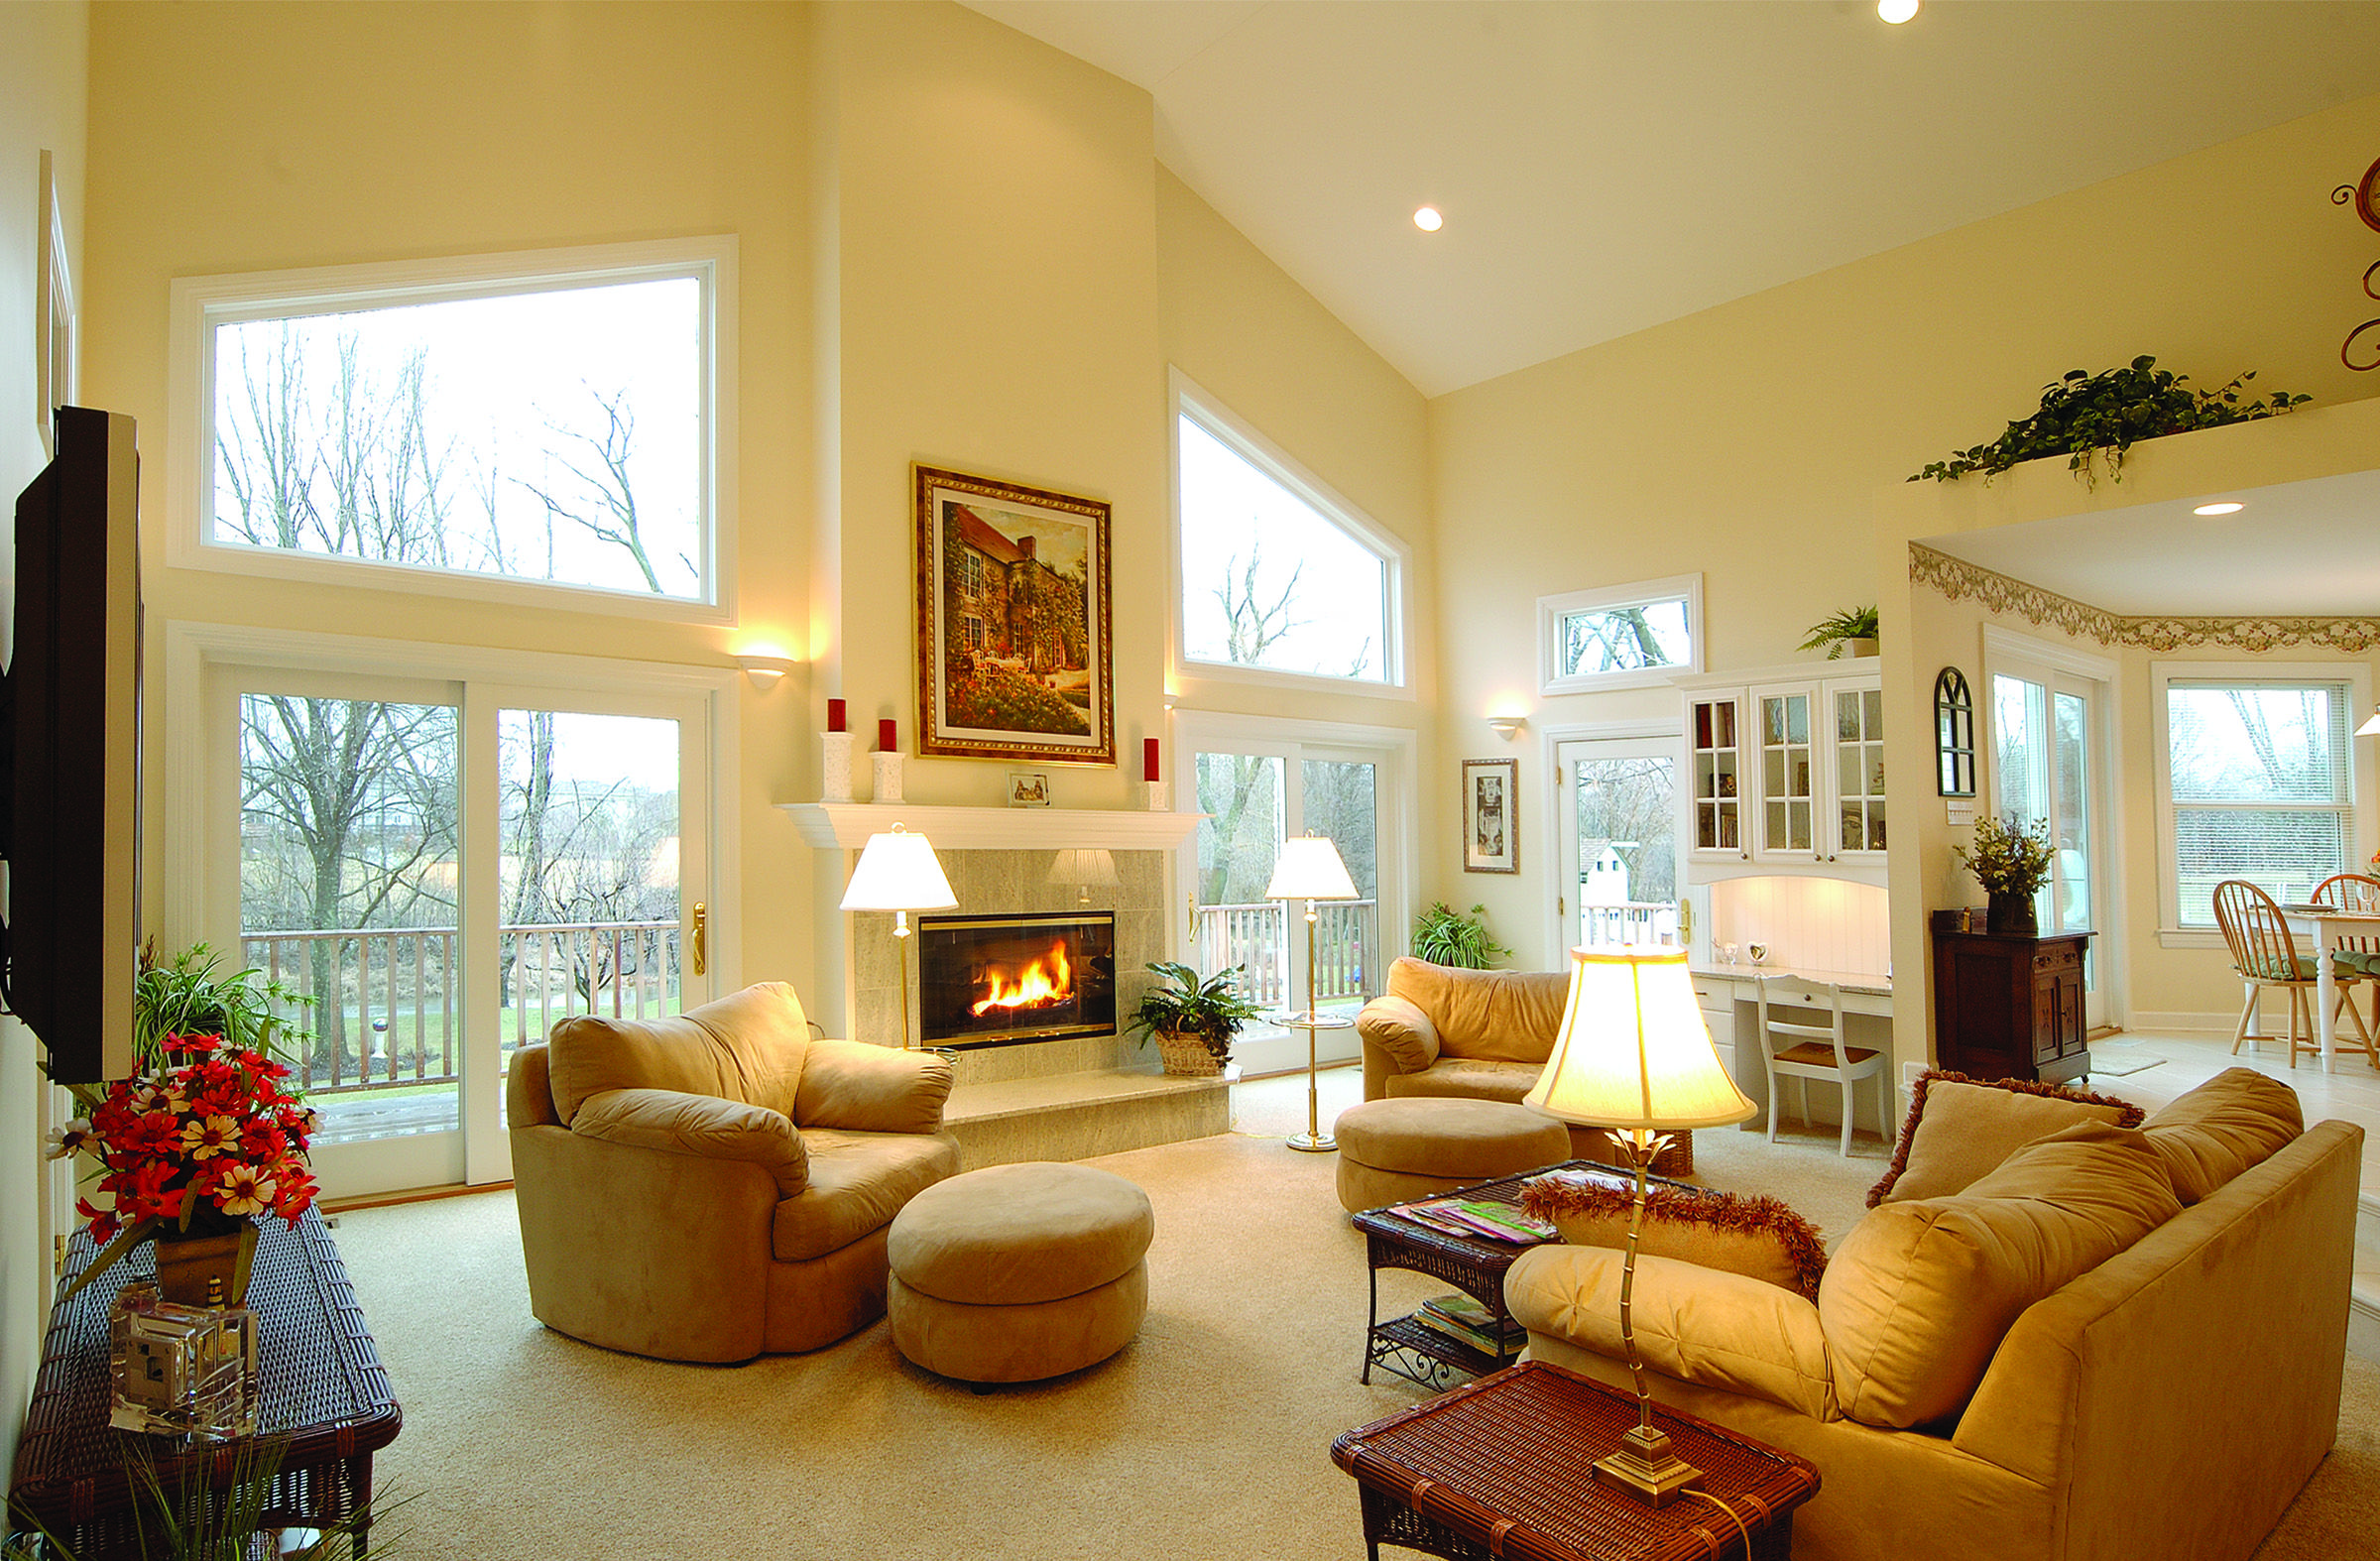 Naperville Home Addition With Its Trapezoidal Windows